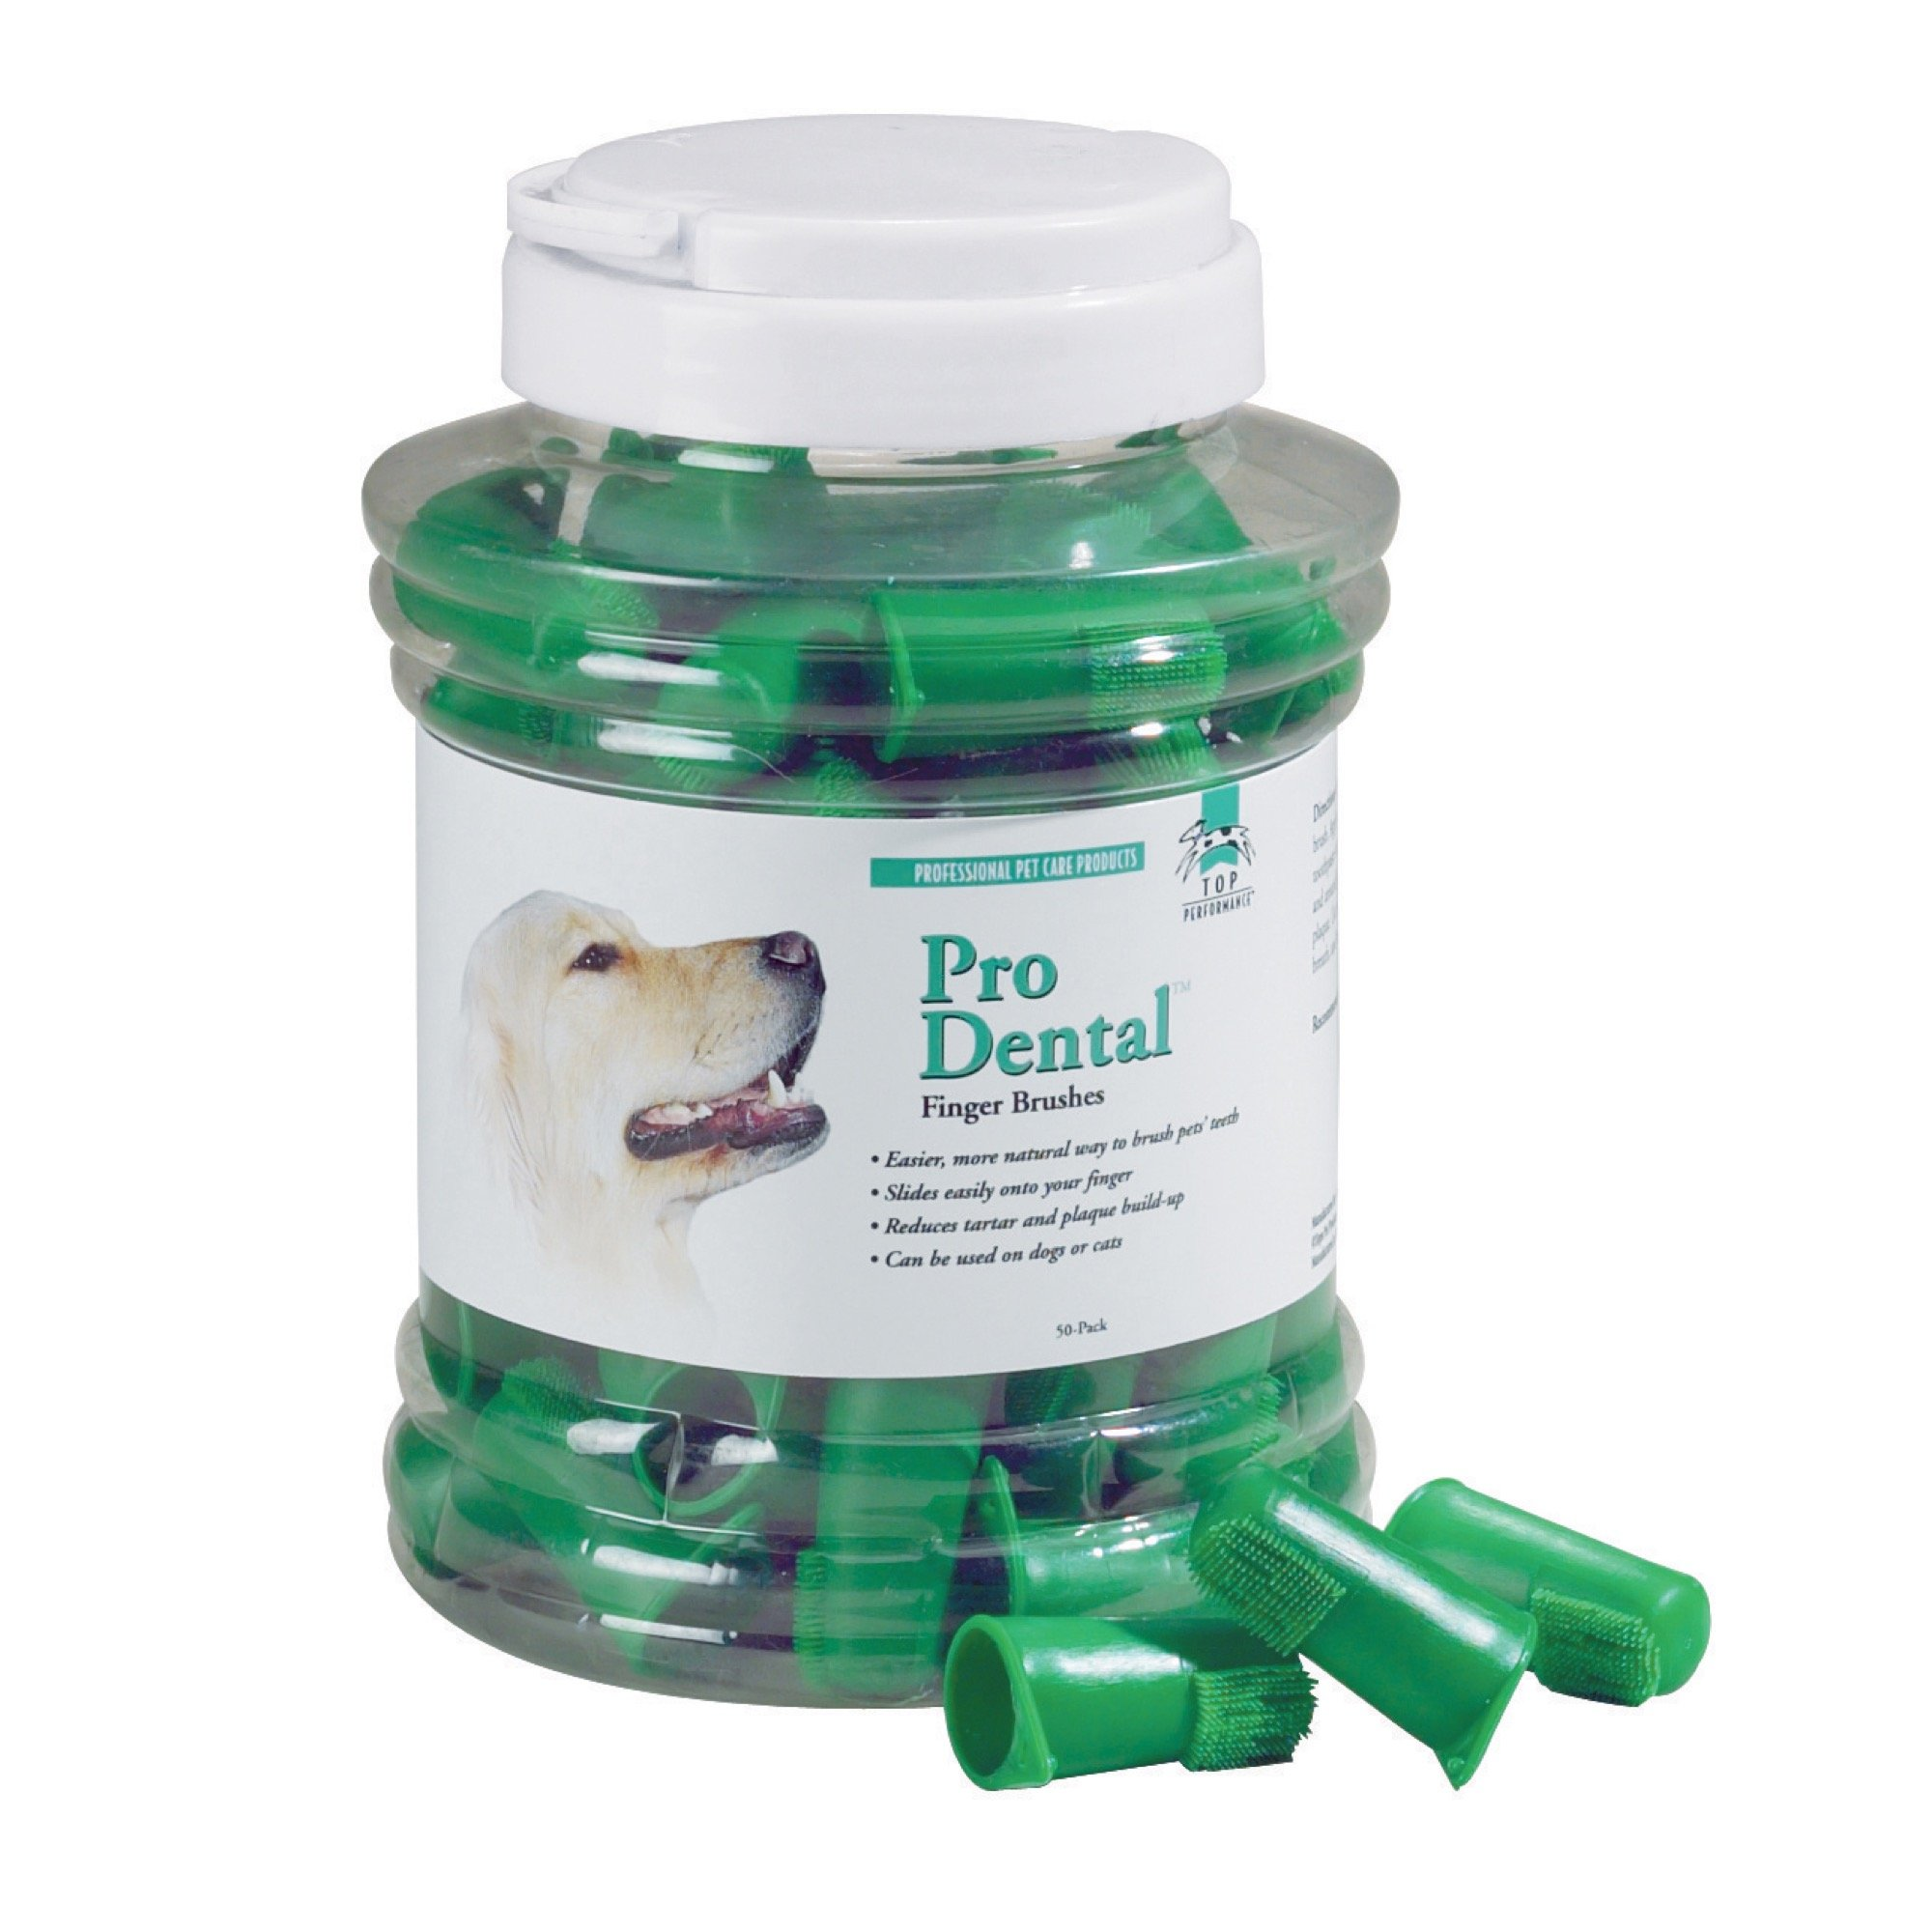 Top Performance ProDental Finger Brushes — Convenient Toothbrushes for Cleaning Pets' Teeth, 50-Pack